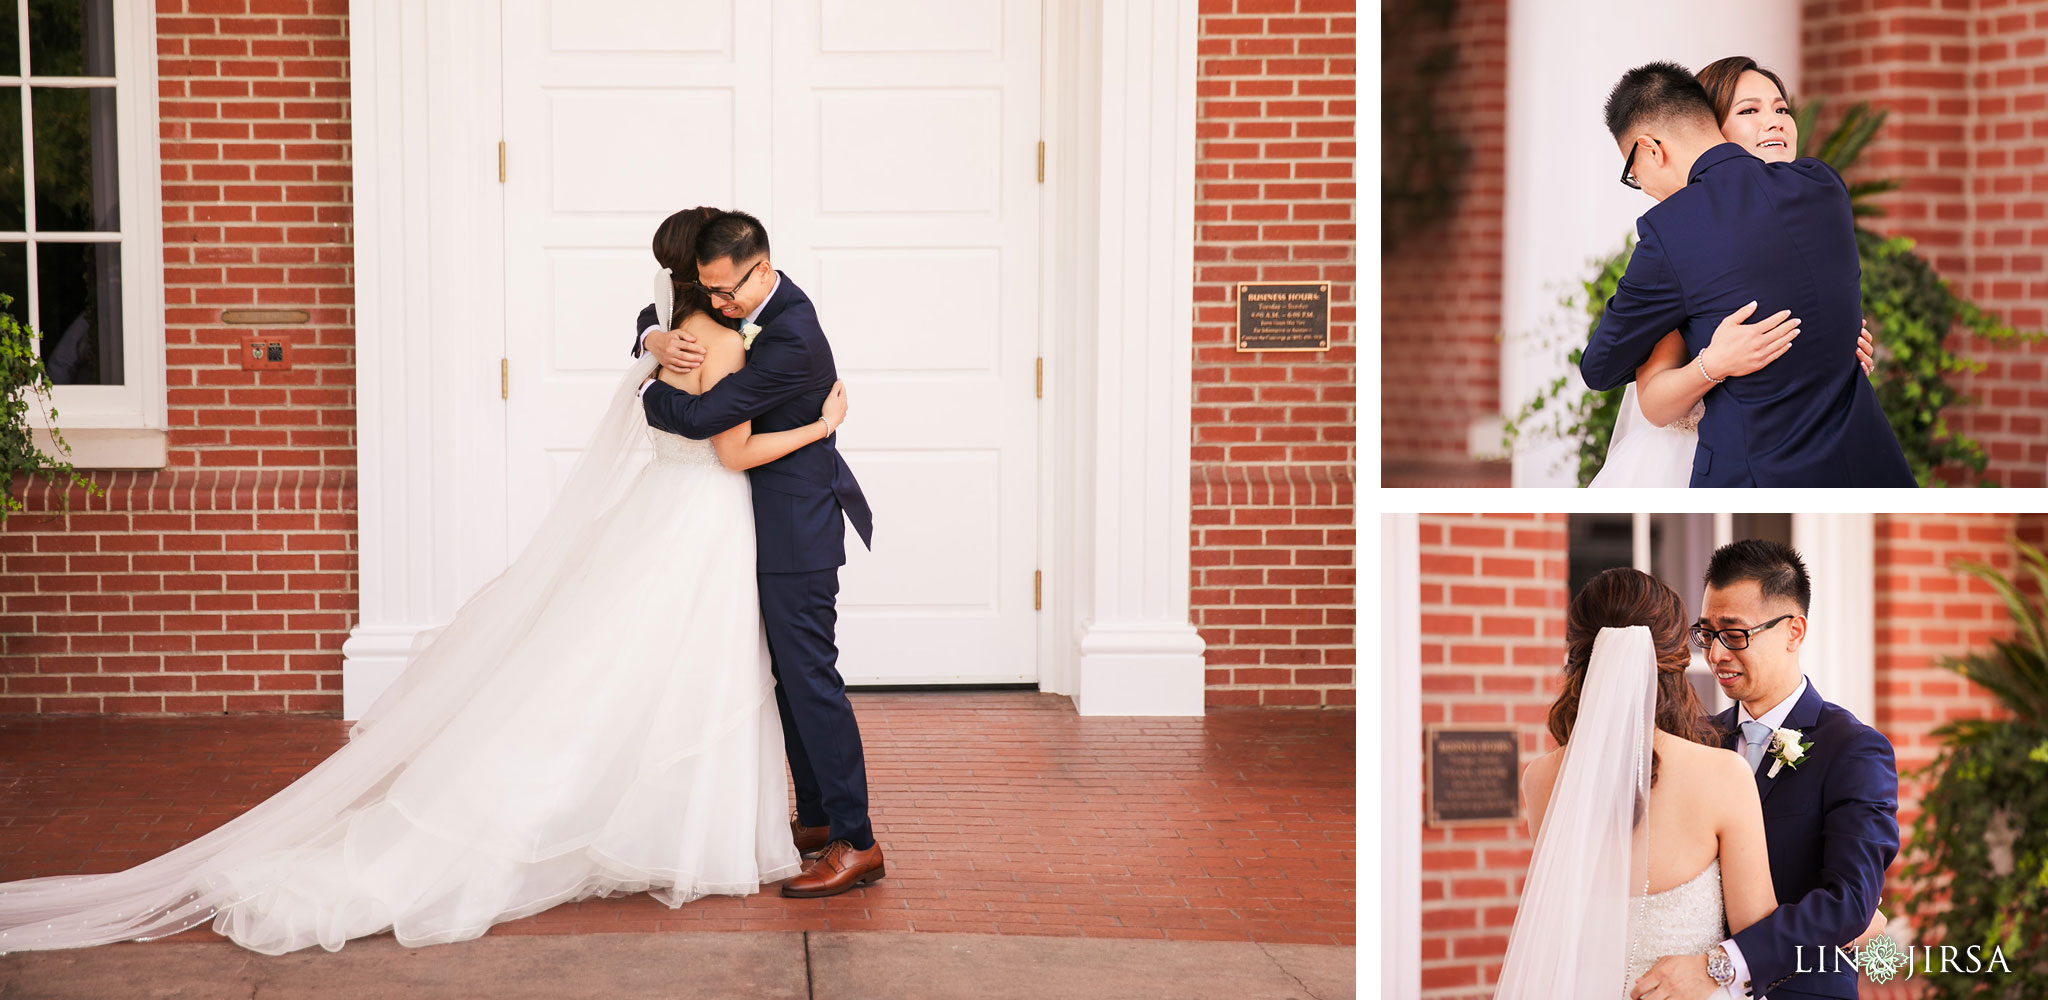 013 sherwood country club ventura county first look wedding photography